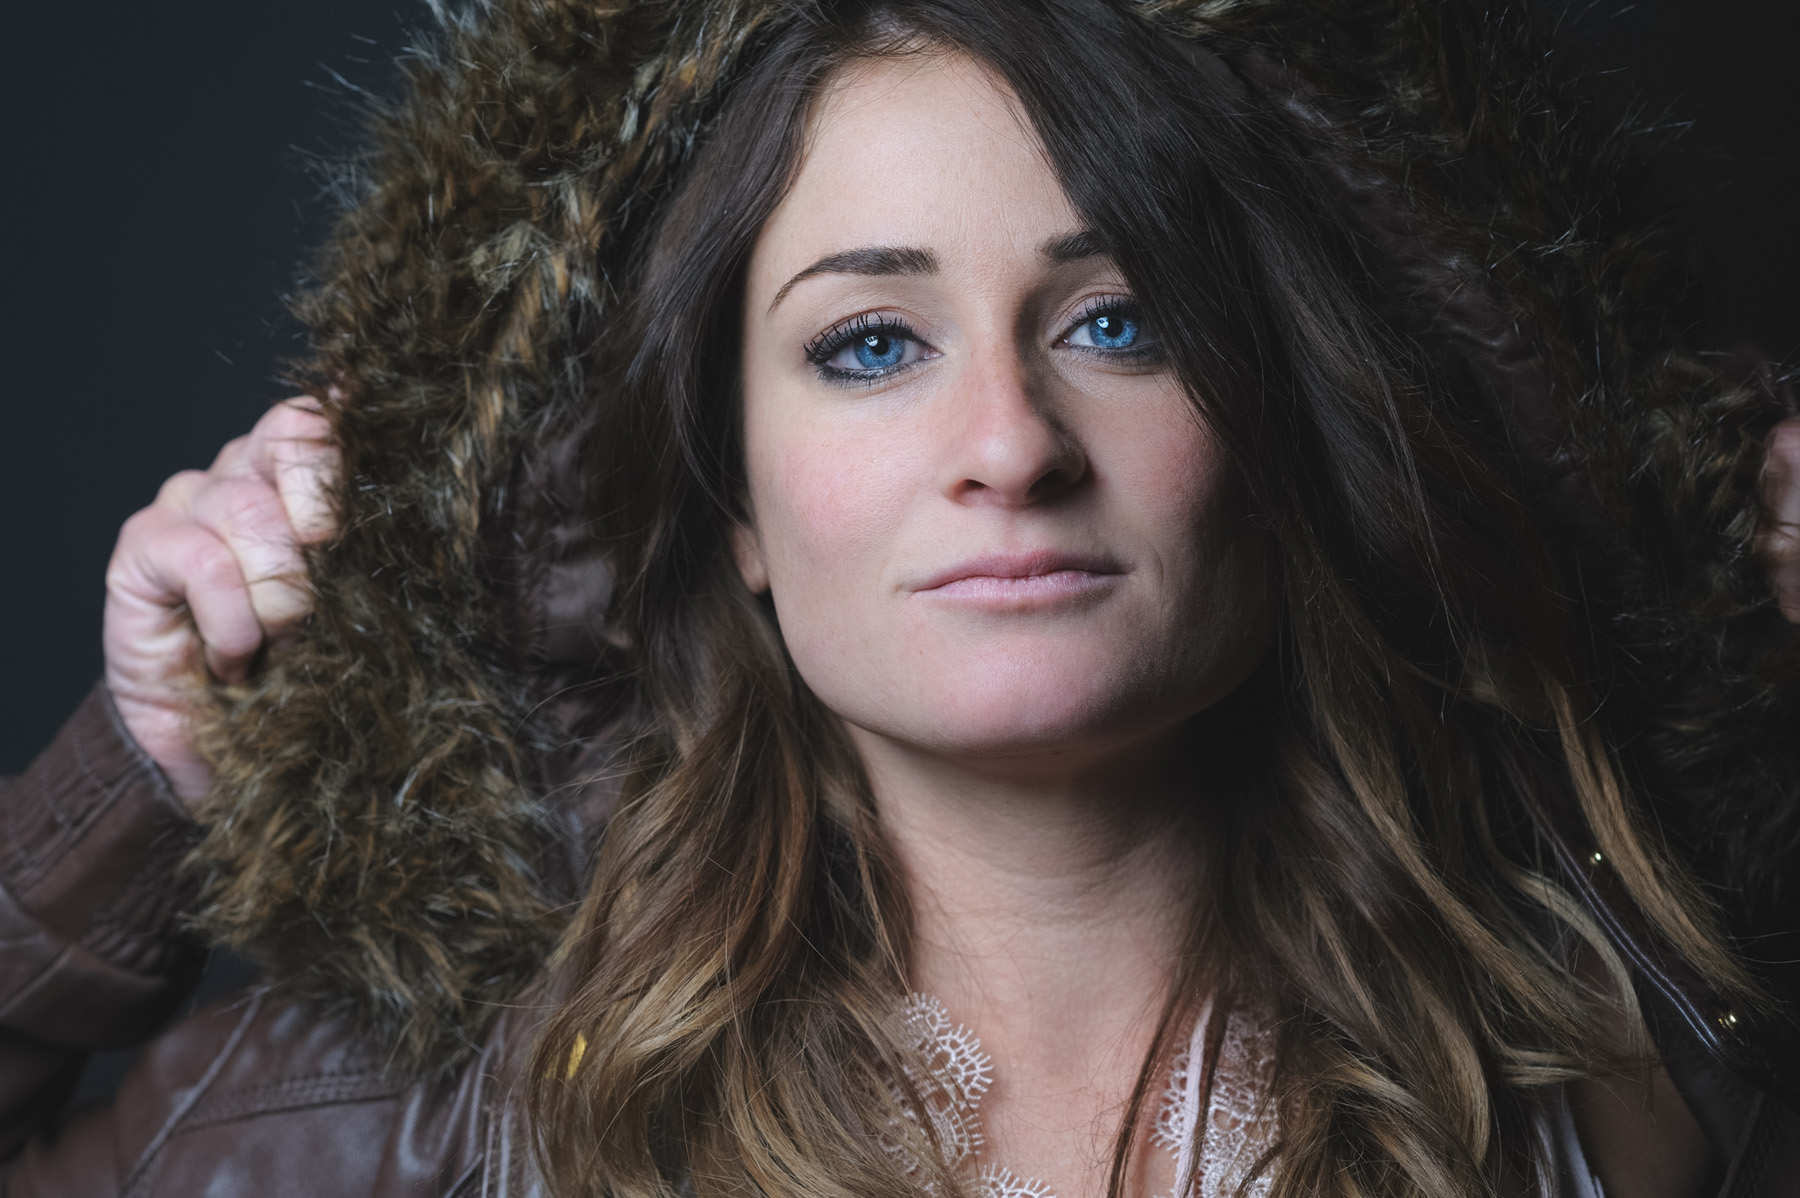 a close up portrait of my friend Ashley wearing a brown park with the fur trimmed hood over her head and her blue eyes looking directly at the camera.